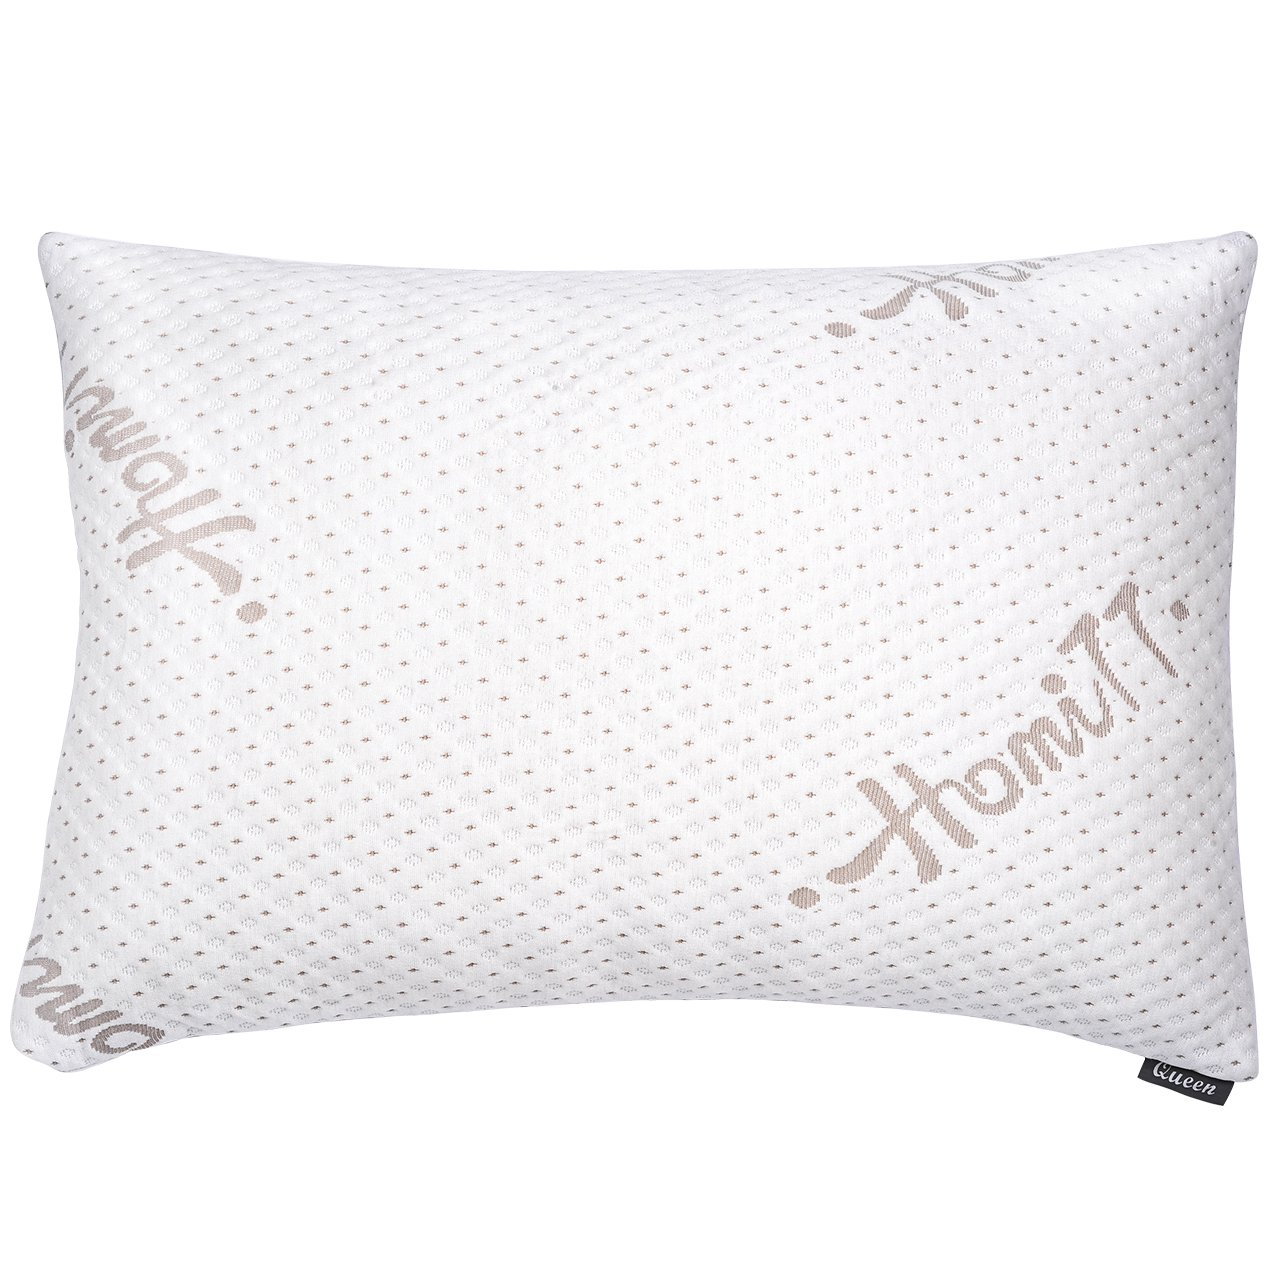 Homitt Shredded Memory Foam Bamboo Pillow, Adjustable Height Hypoallergenic Pillow with Original Memory Foam and Removable Bamboo Derived Rayon Cover HTMF-01